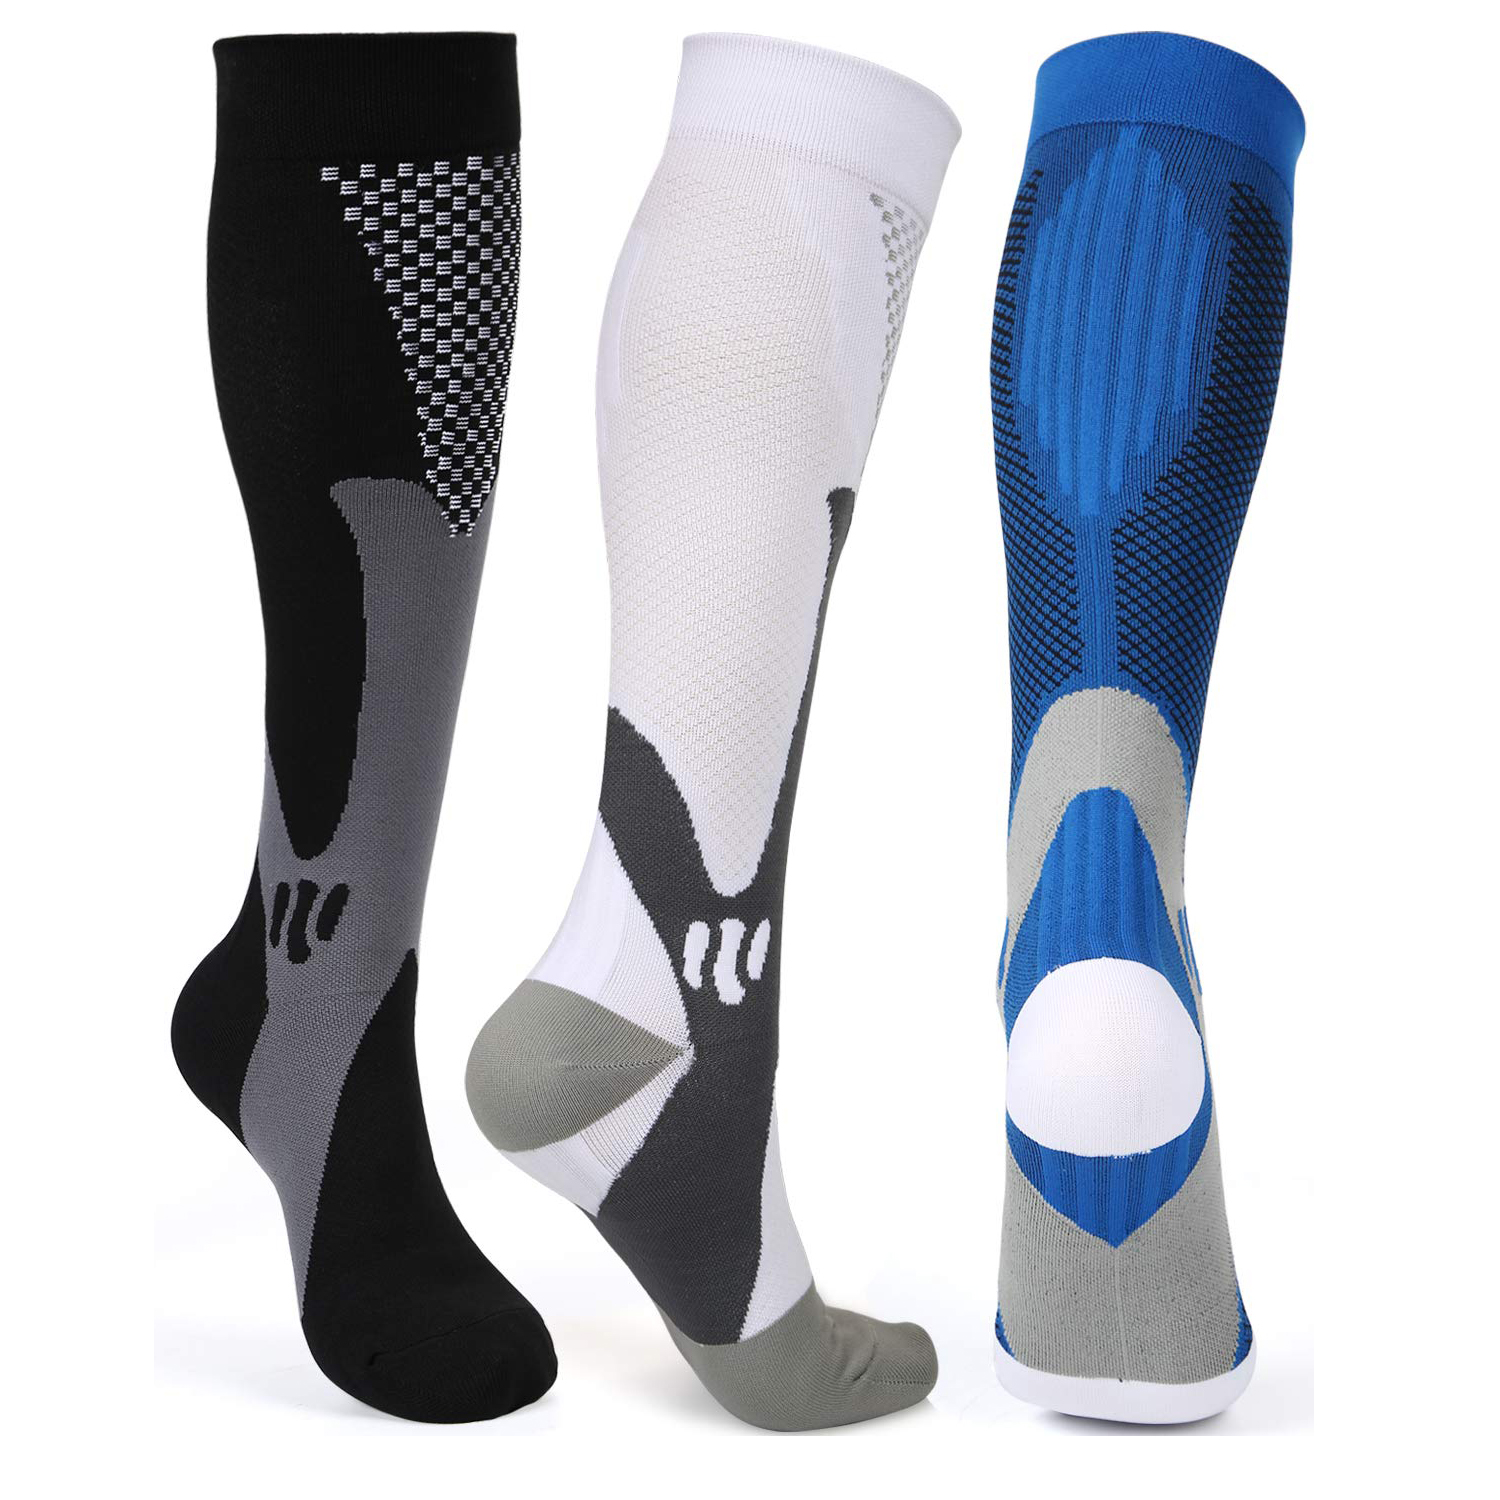 Stockings Compression-Socks Cycling Specializes Nylon Medical-Nursing Breathable Outdoor